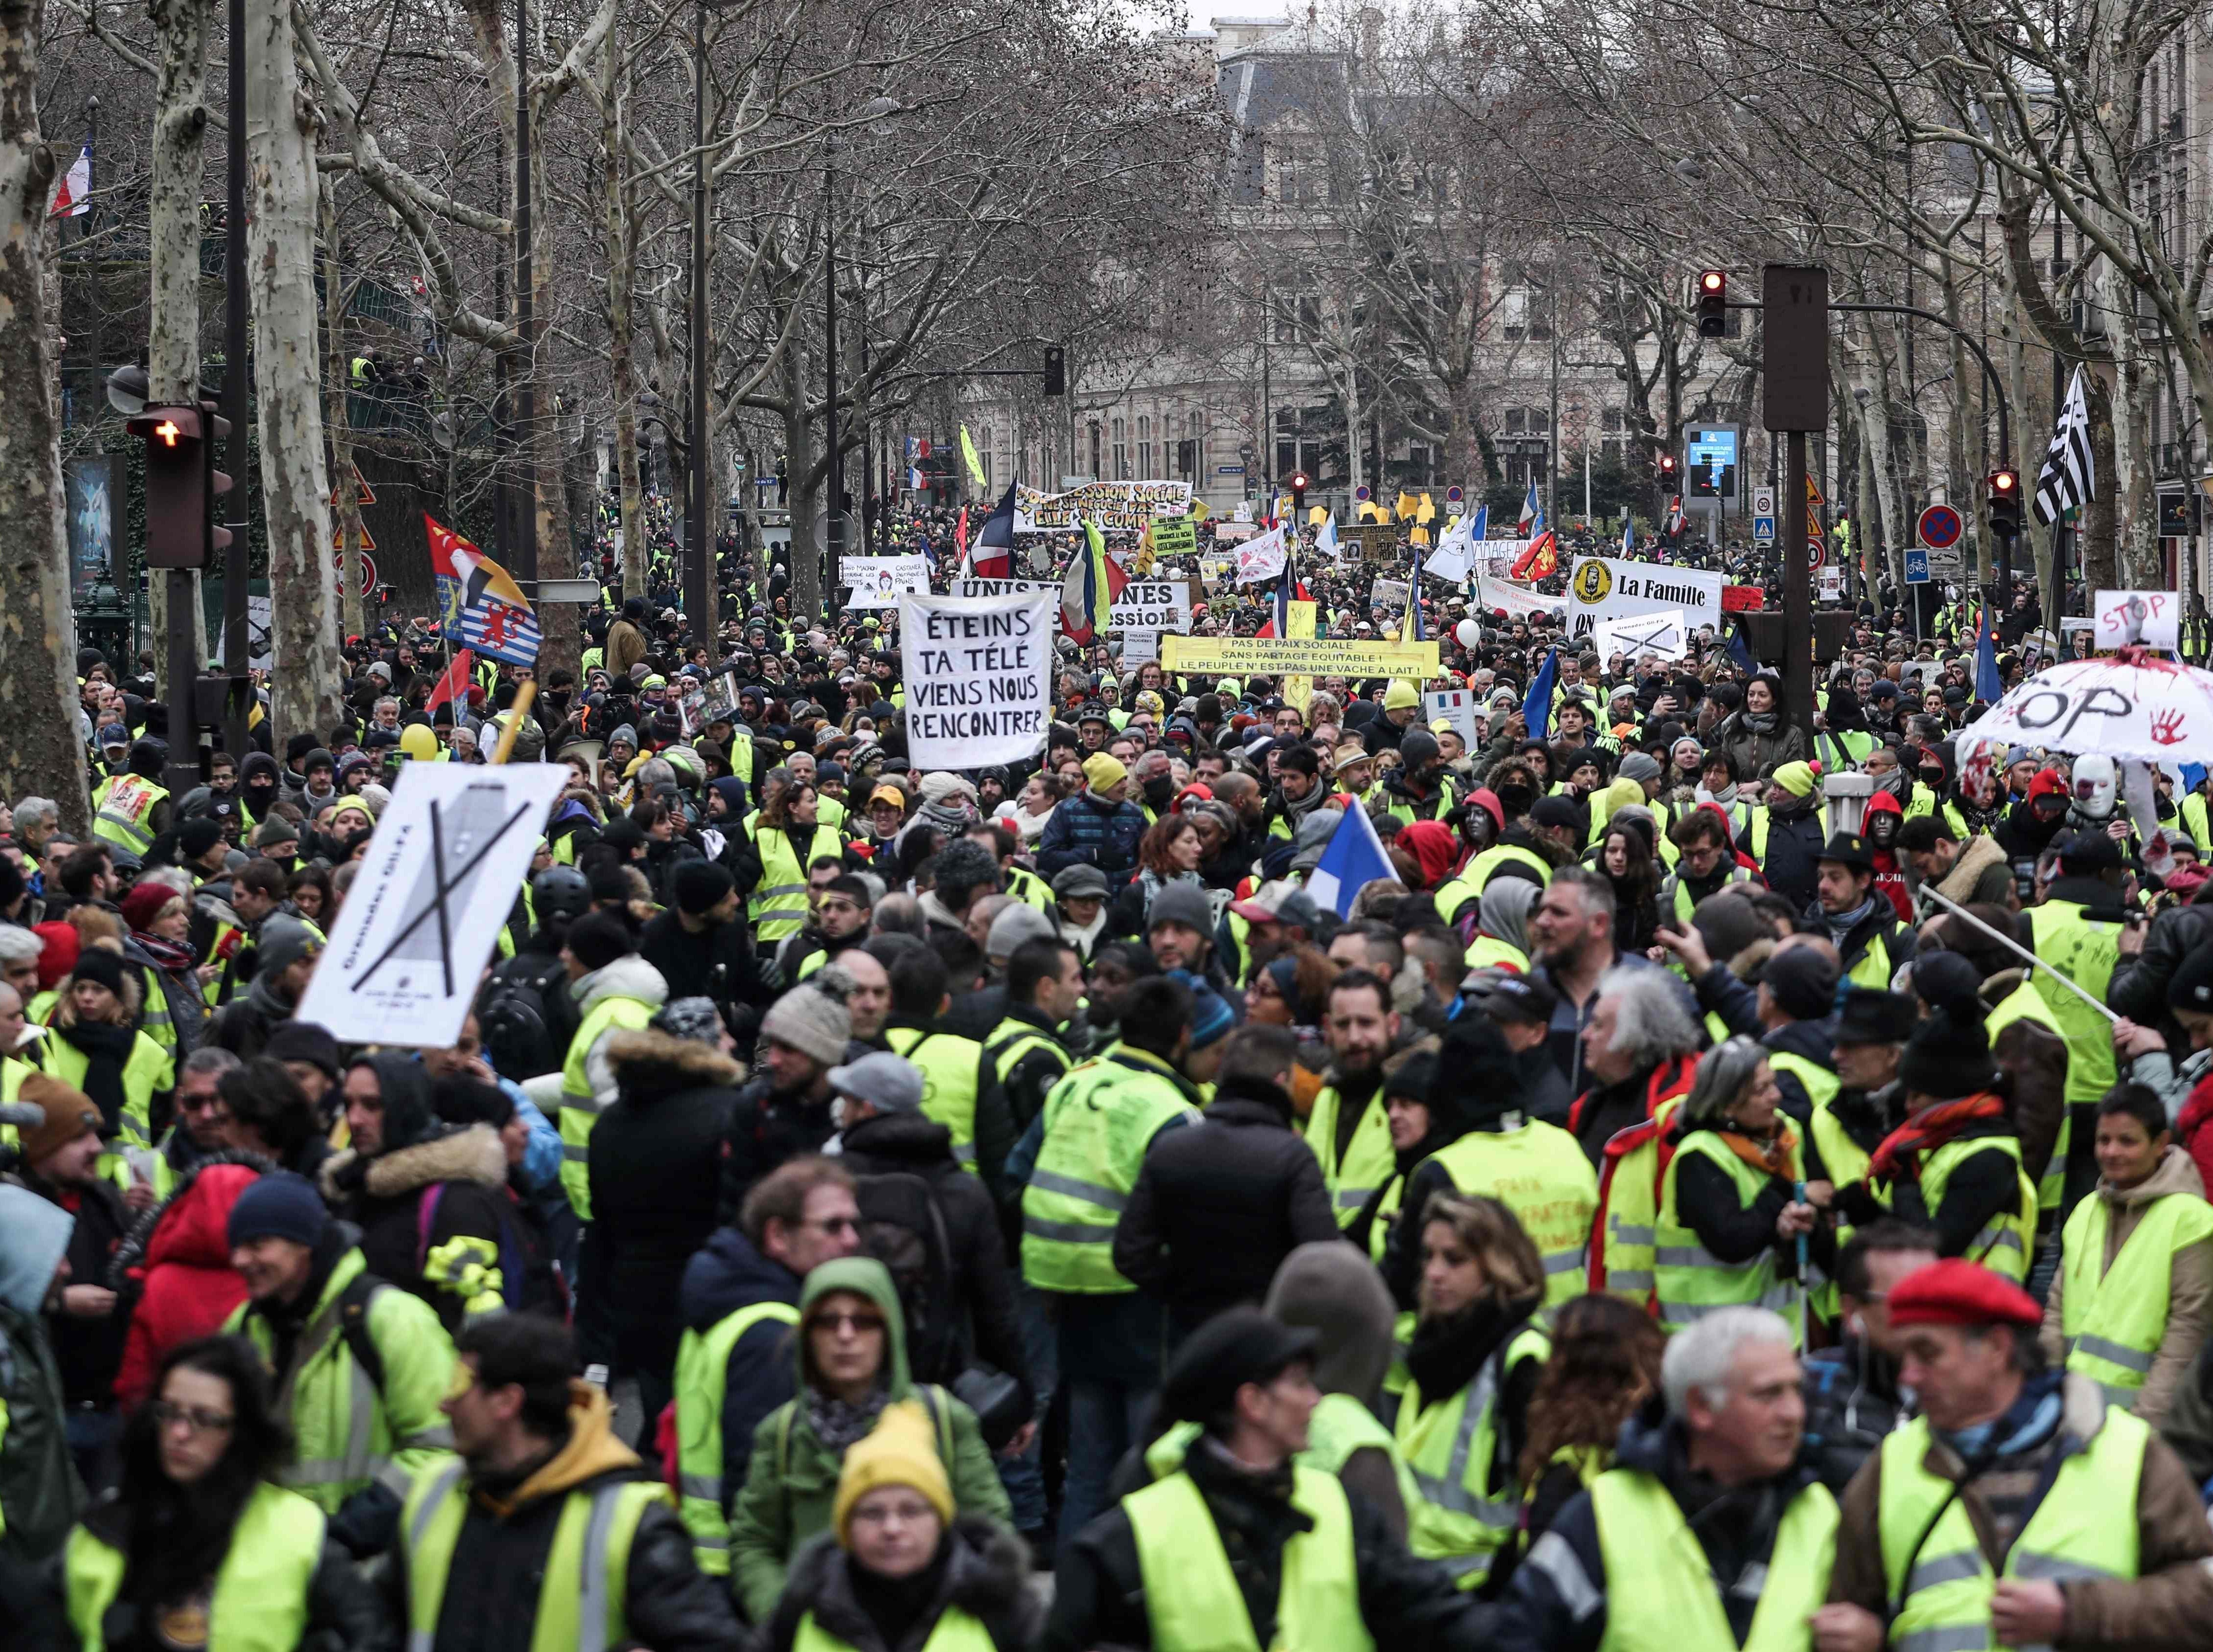 People take part in a march on Feb. 2, 2019 in Paris, called to pacifically protest against police violence toward participants of the last three months demonstrations in France and for the ban of the use by riot police of both 40-millimeter rubber defensive bullet launcher LBD and GLI-F4 stun grenades, as Yellow Vest protesters take to the streets for the 12th consecutive Saturday.